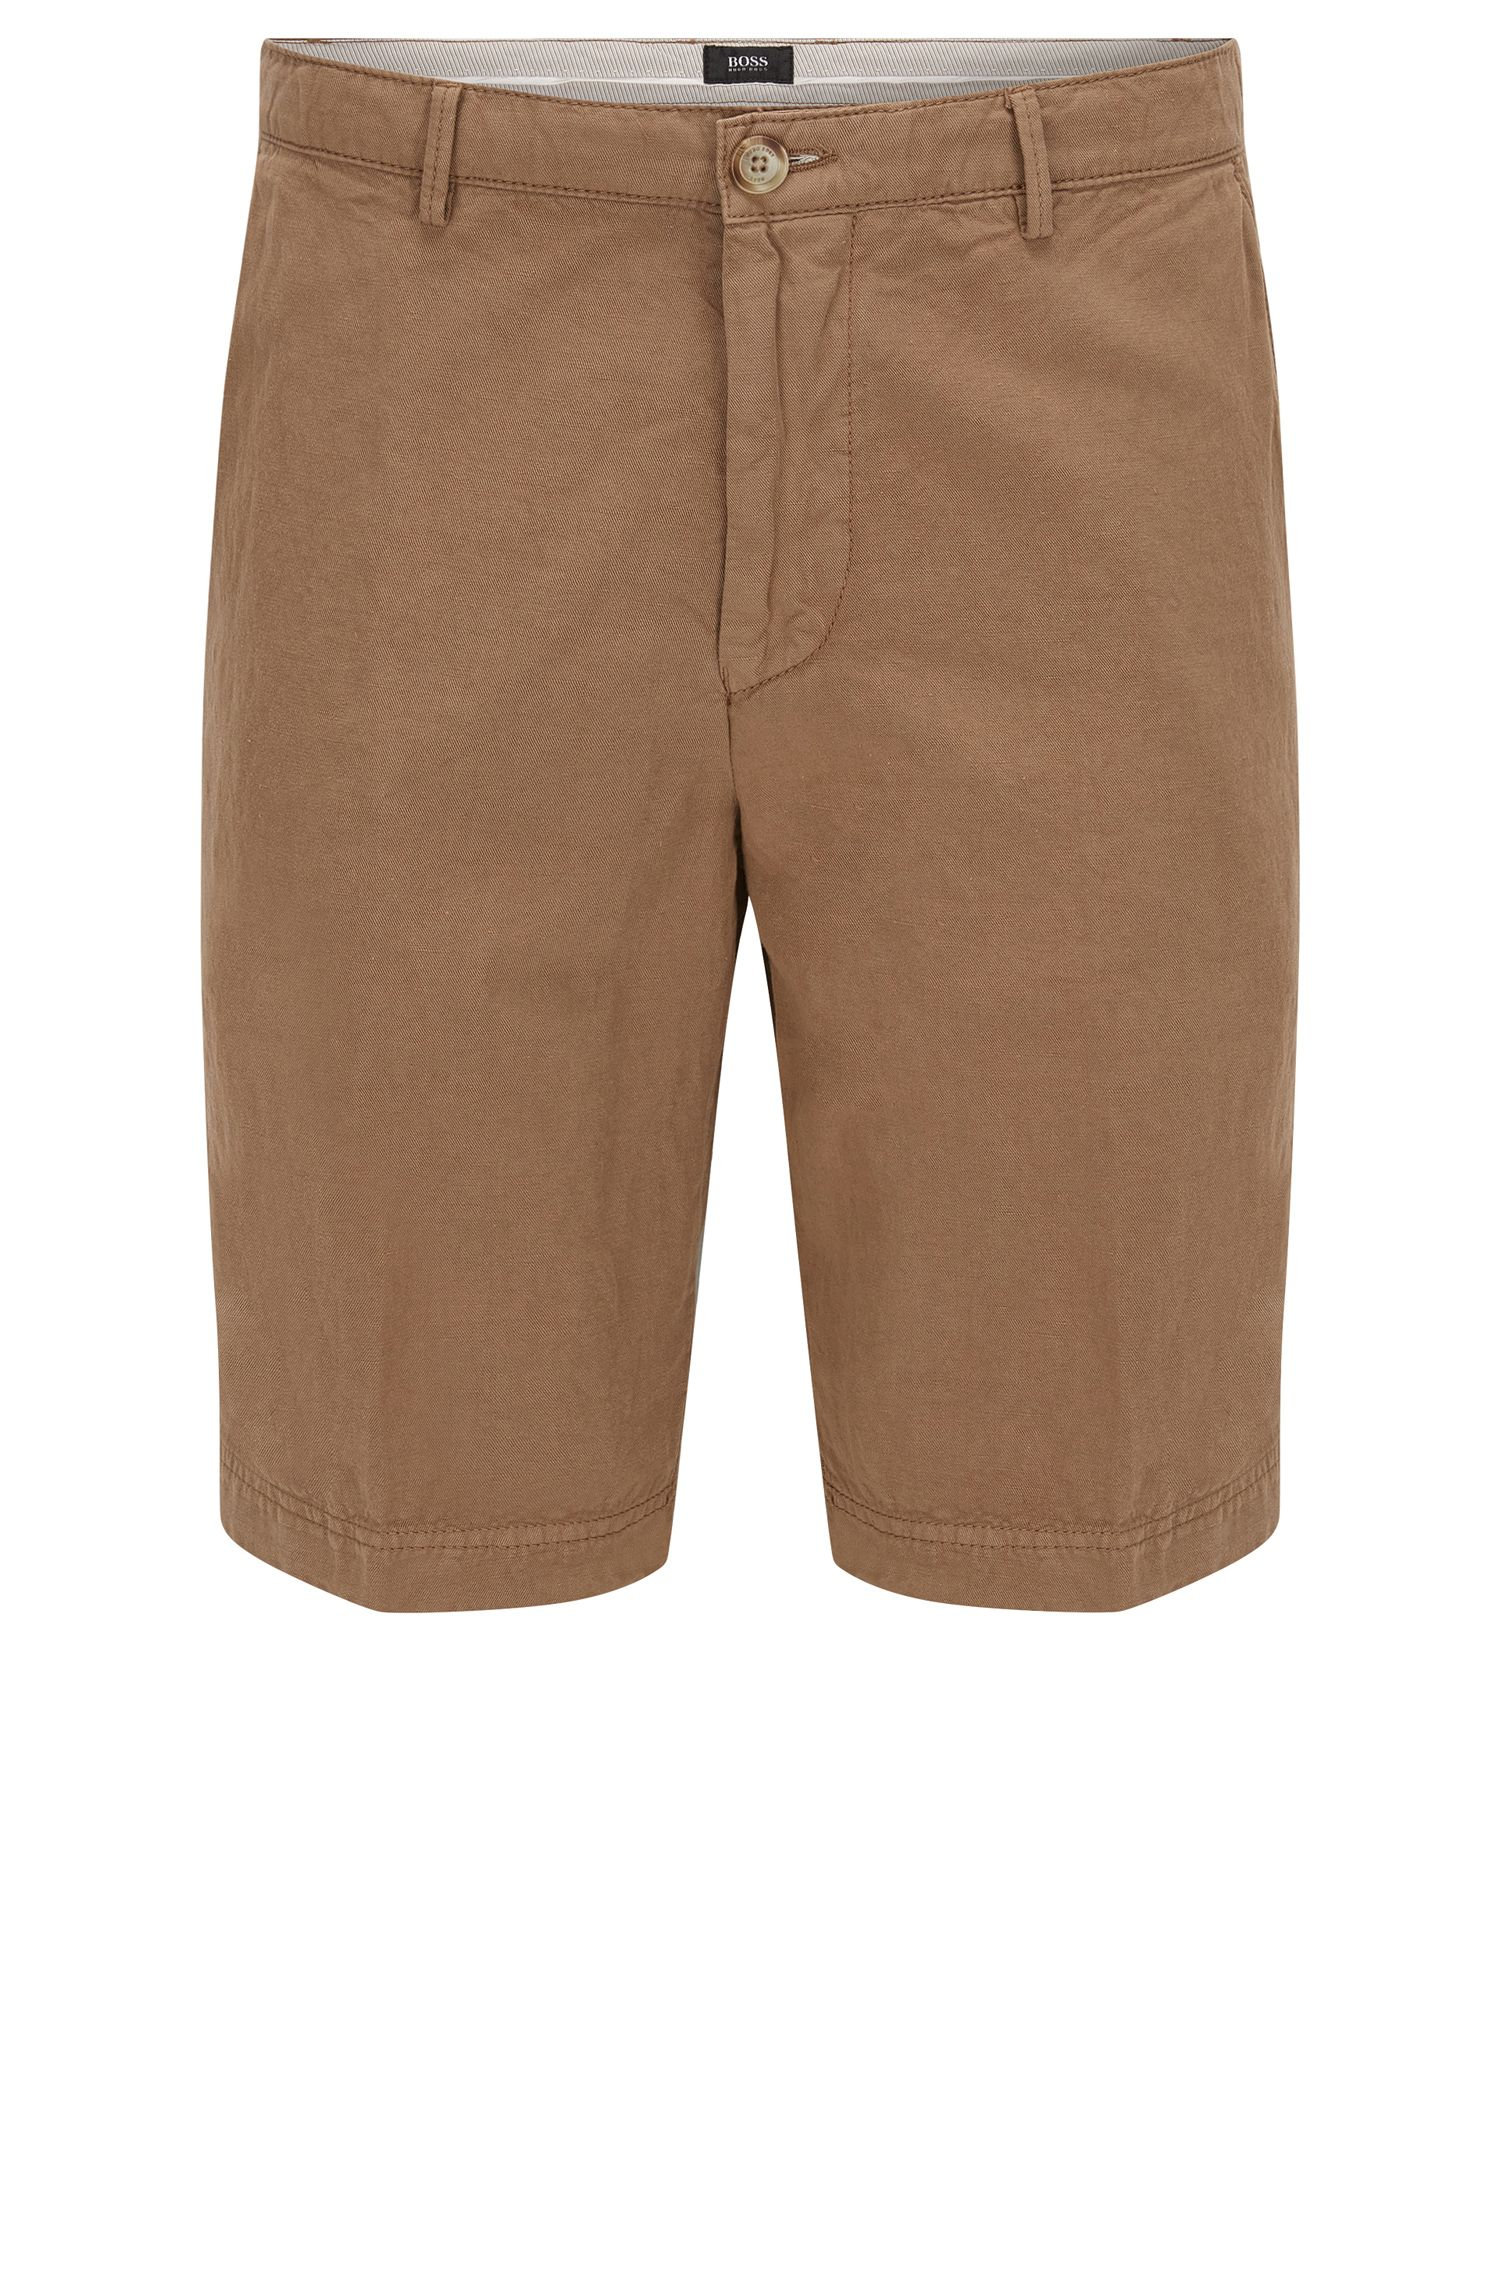 Cotton Linen Shorts, Regular Fit | Crigan Short D